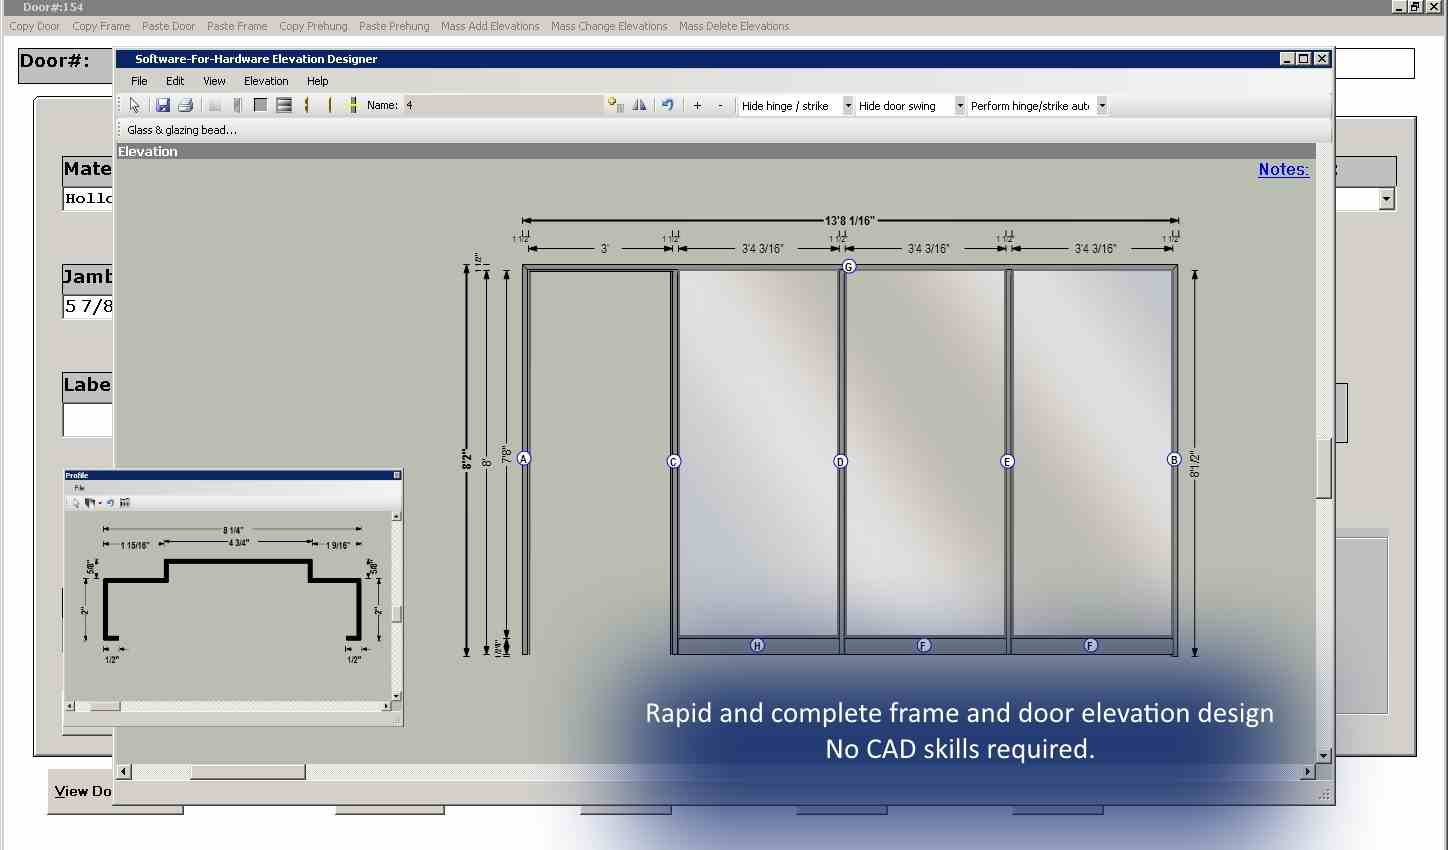 Frame Designer  sc 1 th 172 & Software for Hardware LLC